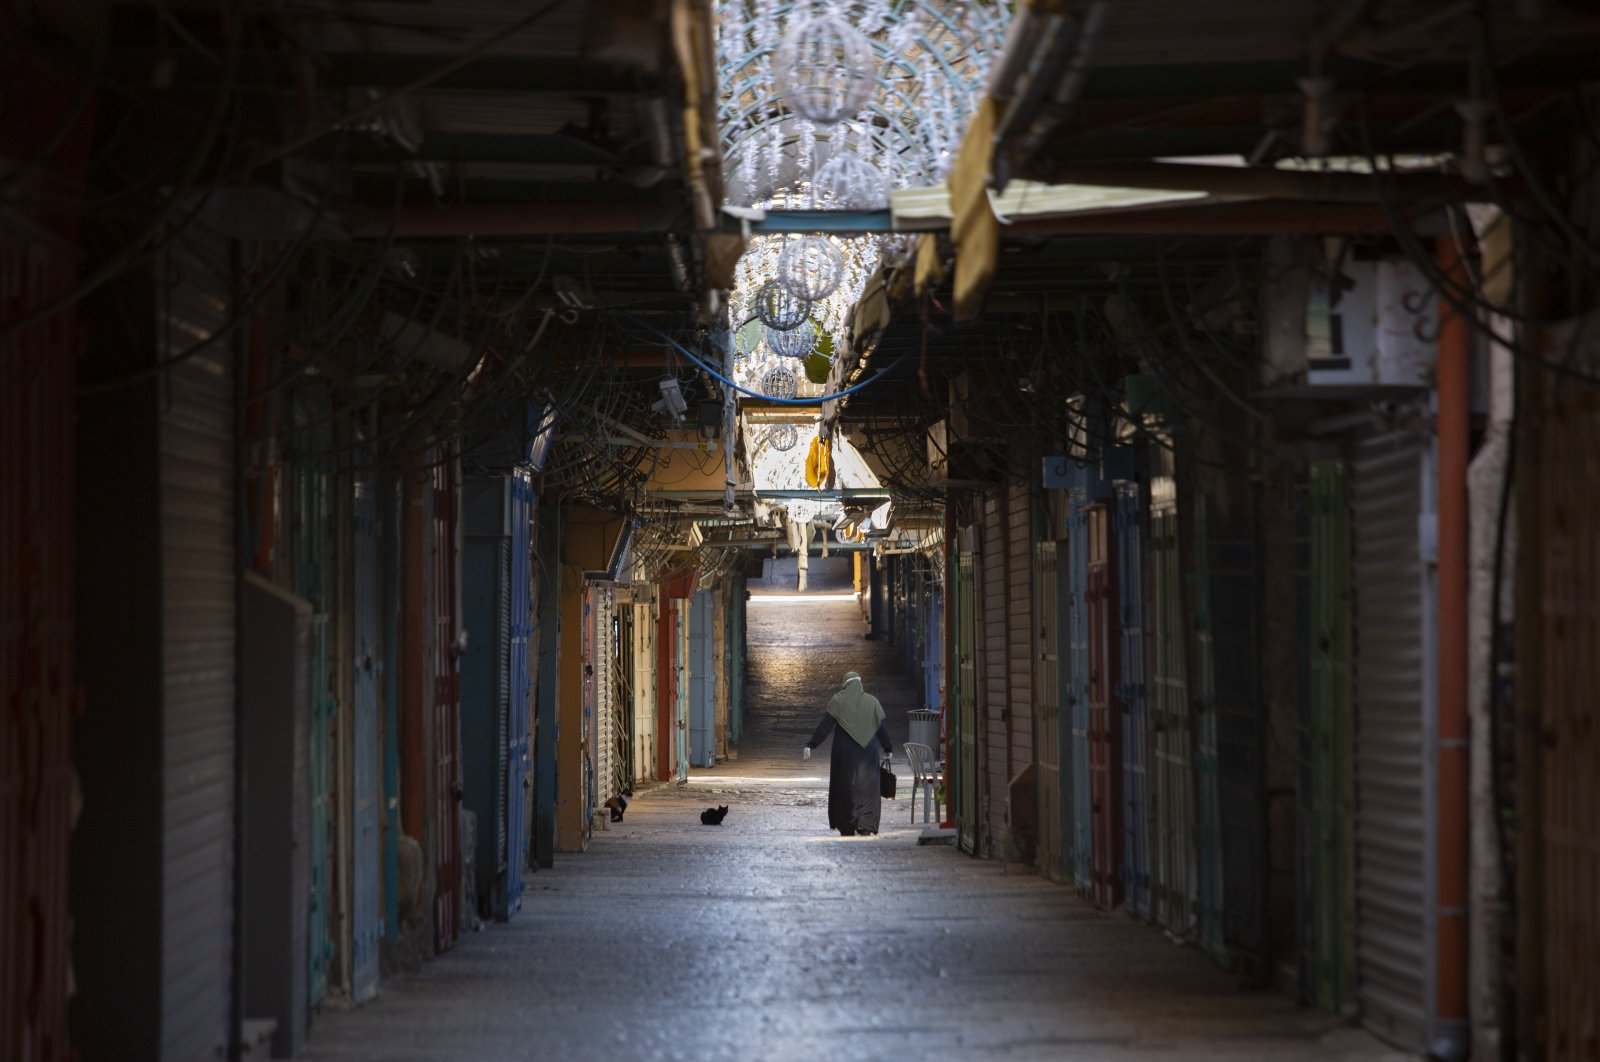 A woman walks down an alley in a closed market during government measures to stop the spread of the coronavirus in Jerusalem's Old City, April 13, 2020. (AP Photo)